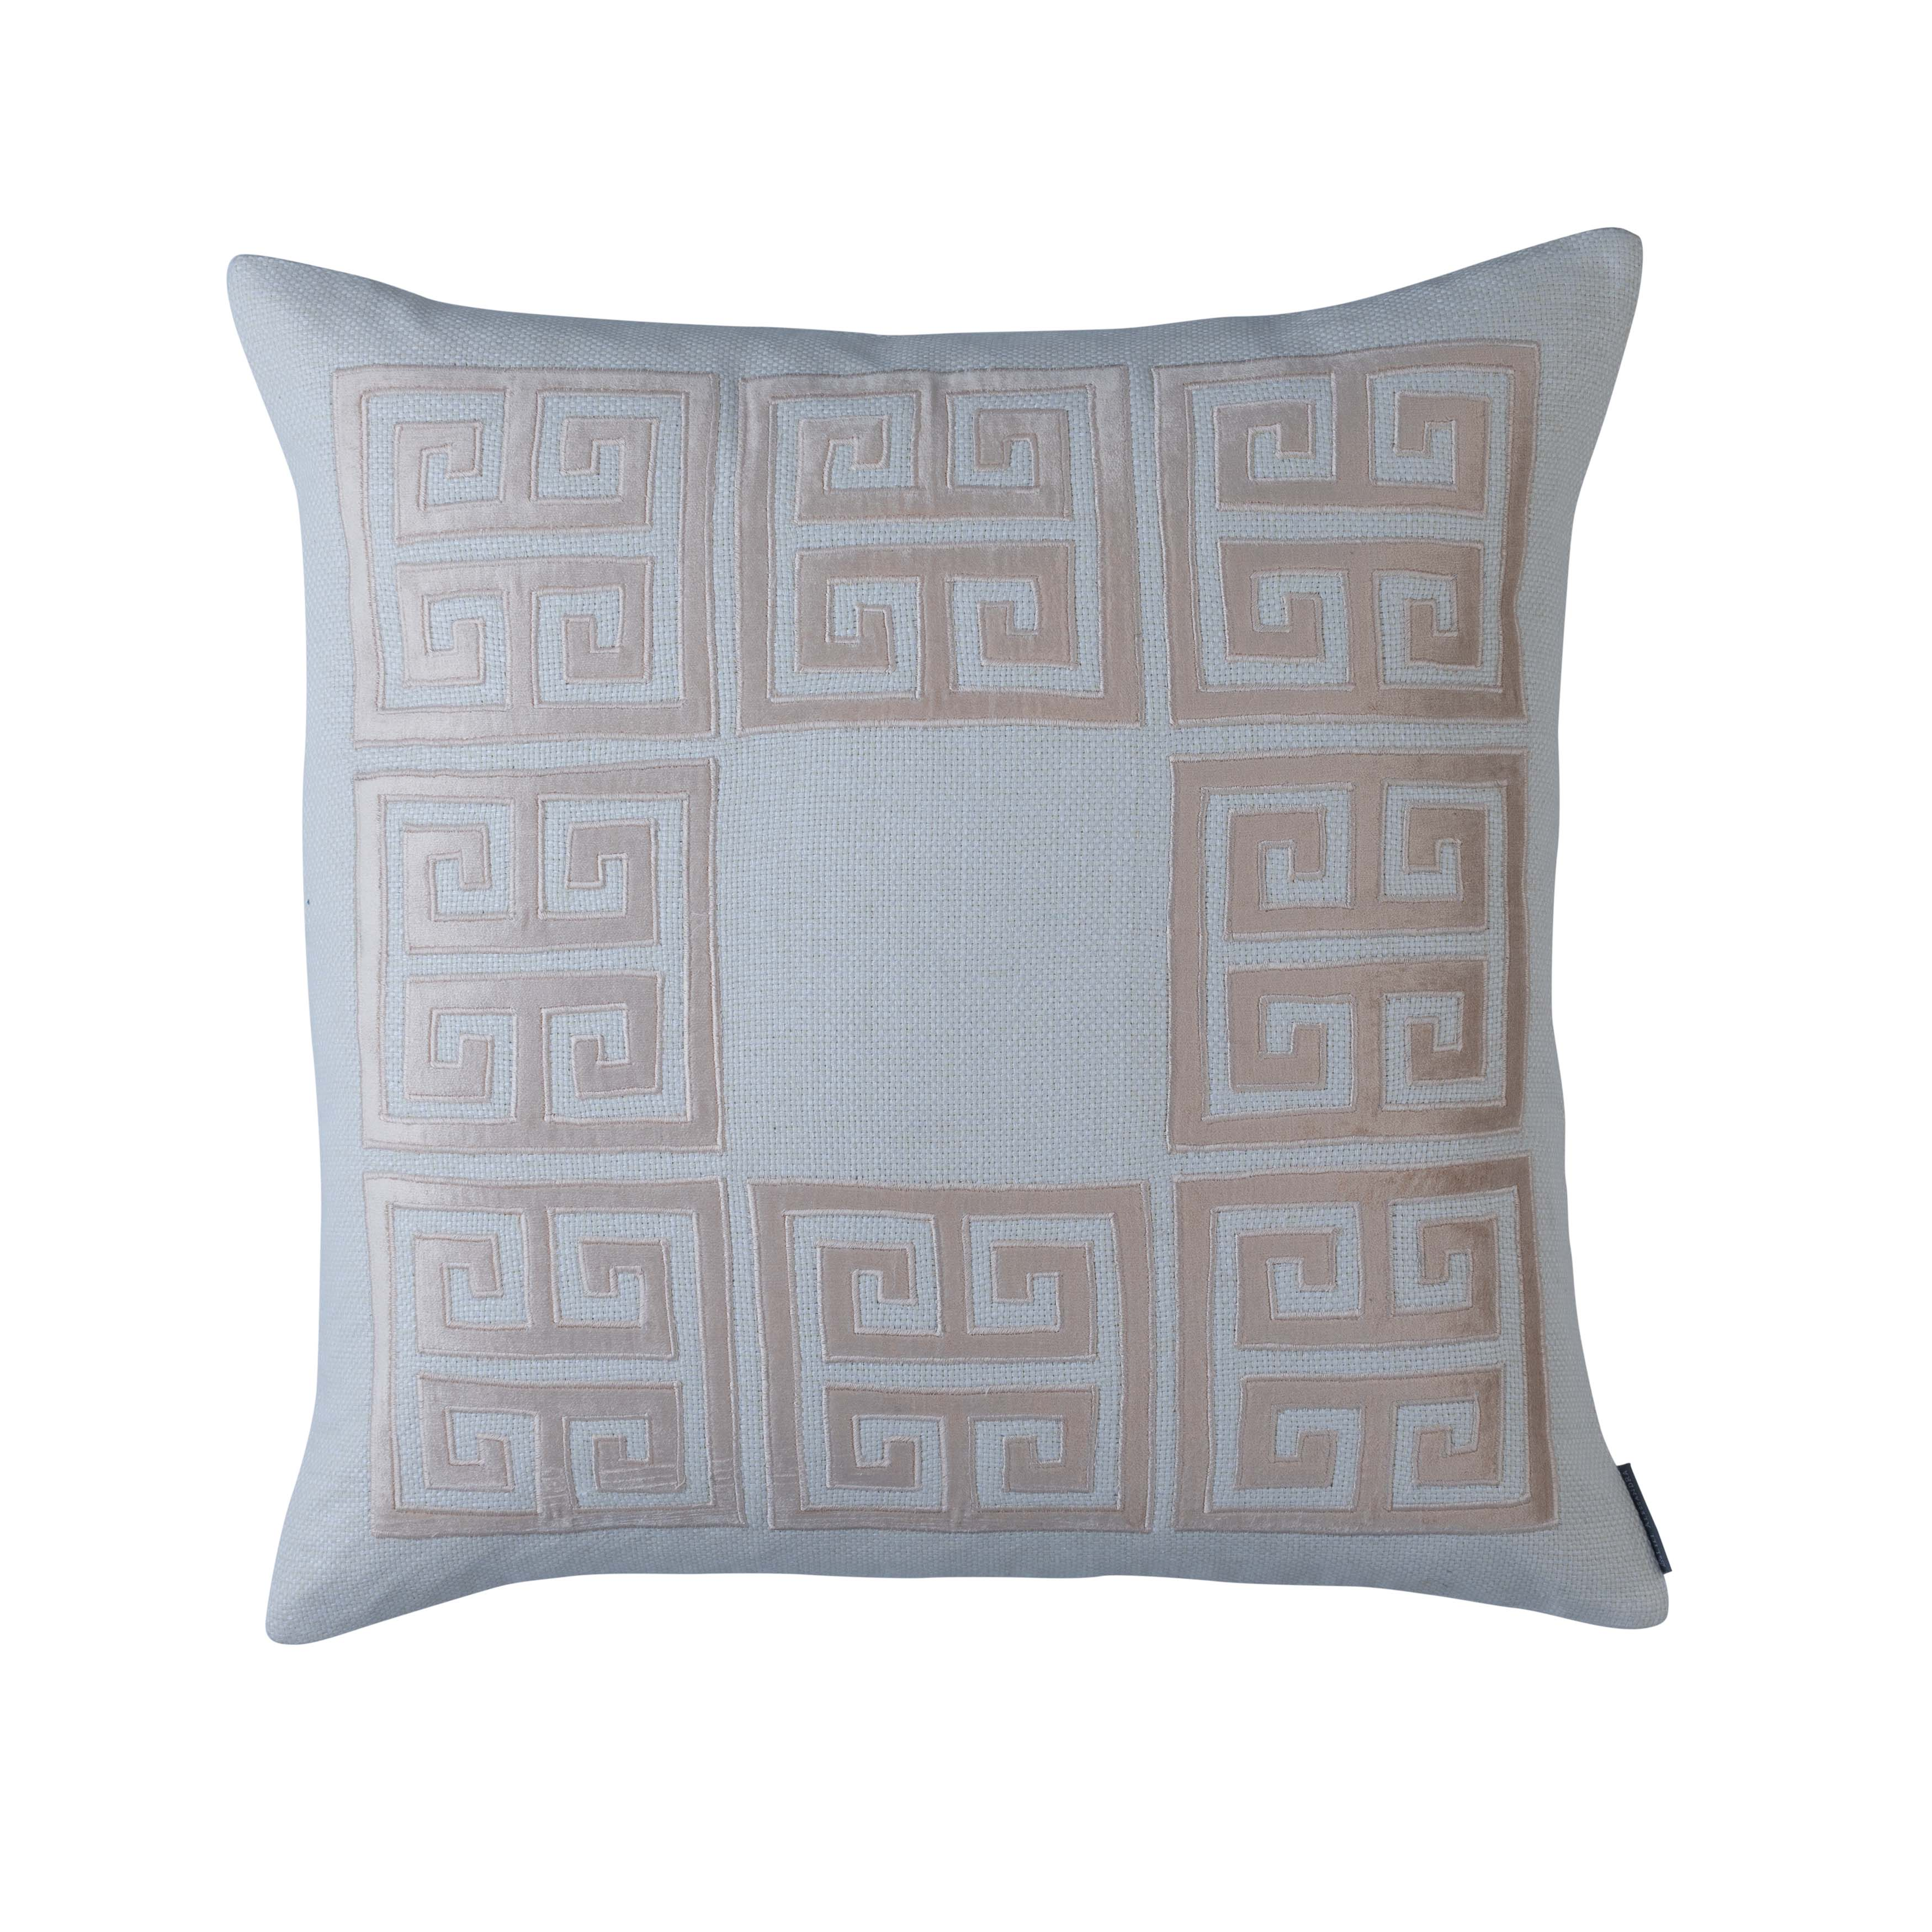 Guy Ivory Basketweave Blush Velvet Square Throw Pillow [Luxury comforter Sets] [by Latest Bedding]